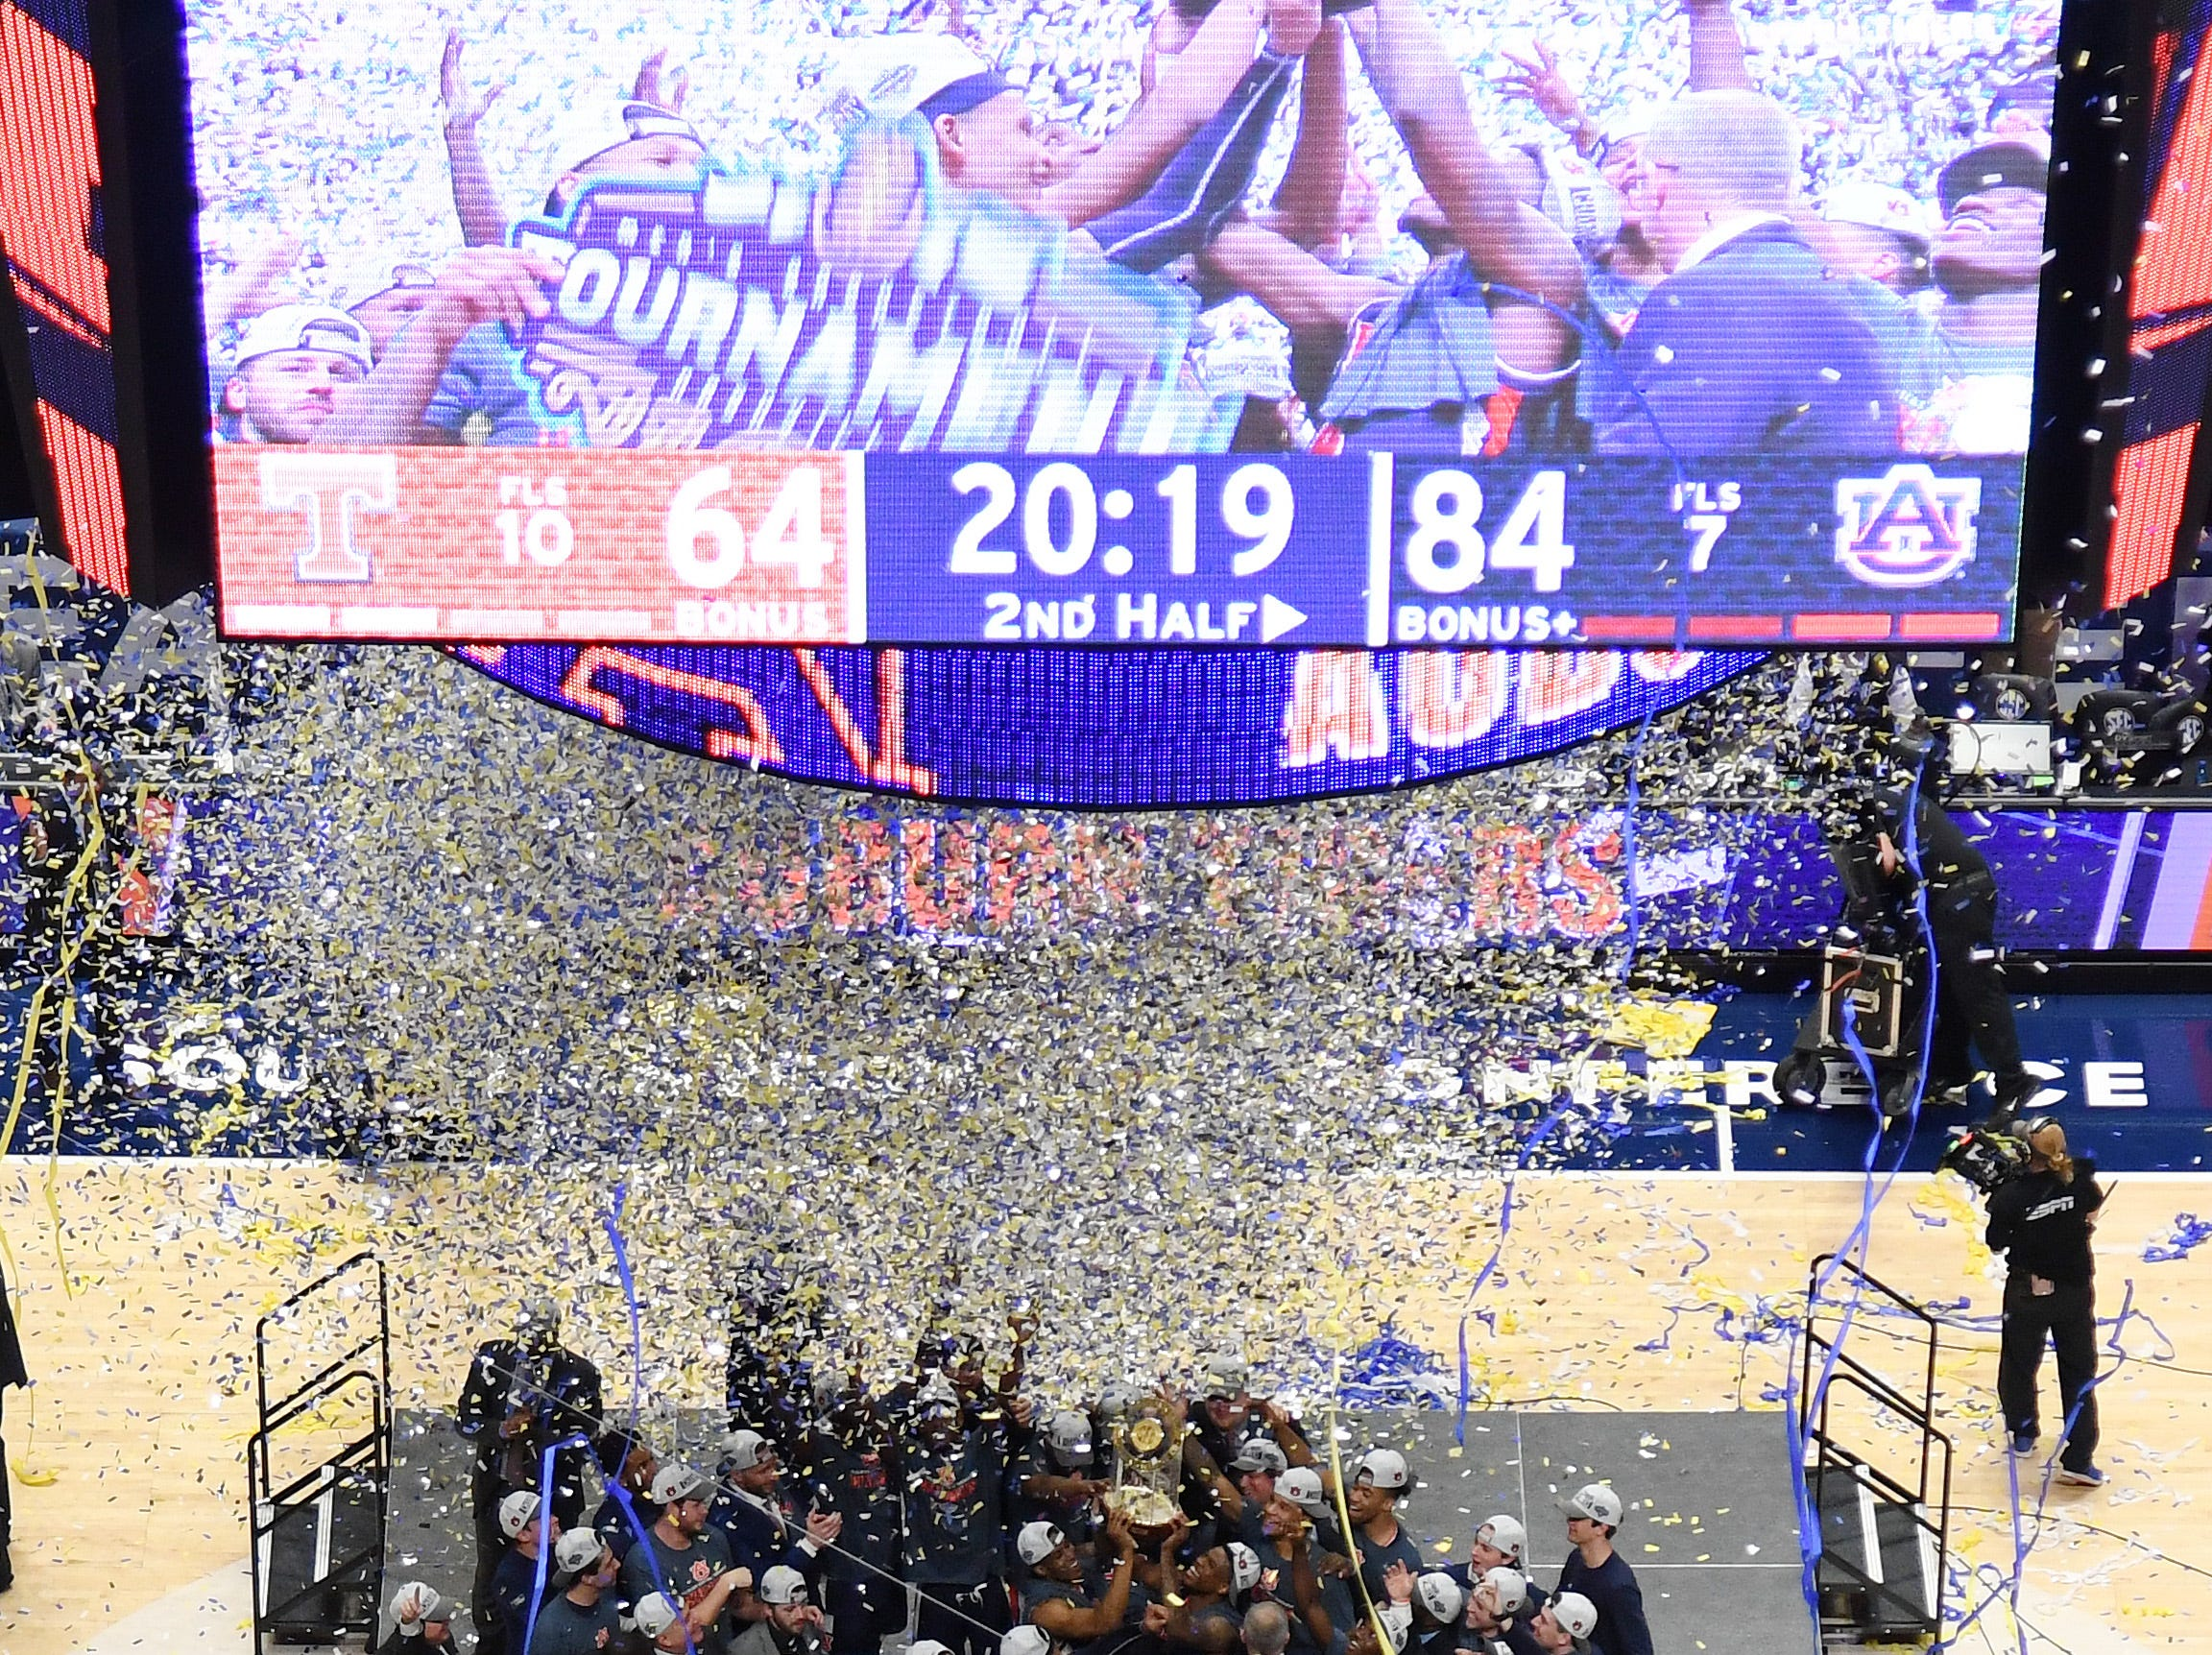 Mar 17, 2019; Nashville, TN, USA; Auburn Tigers players celebrate after beating the Tennessee Volunteers in the SEC conference tournament championship game at Bridgestone Arena. Mandatory Credit: Christopher Hanewinckel-USA TODAY Sports